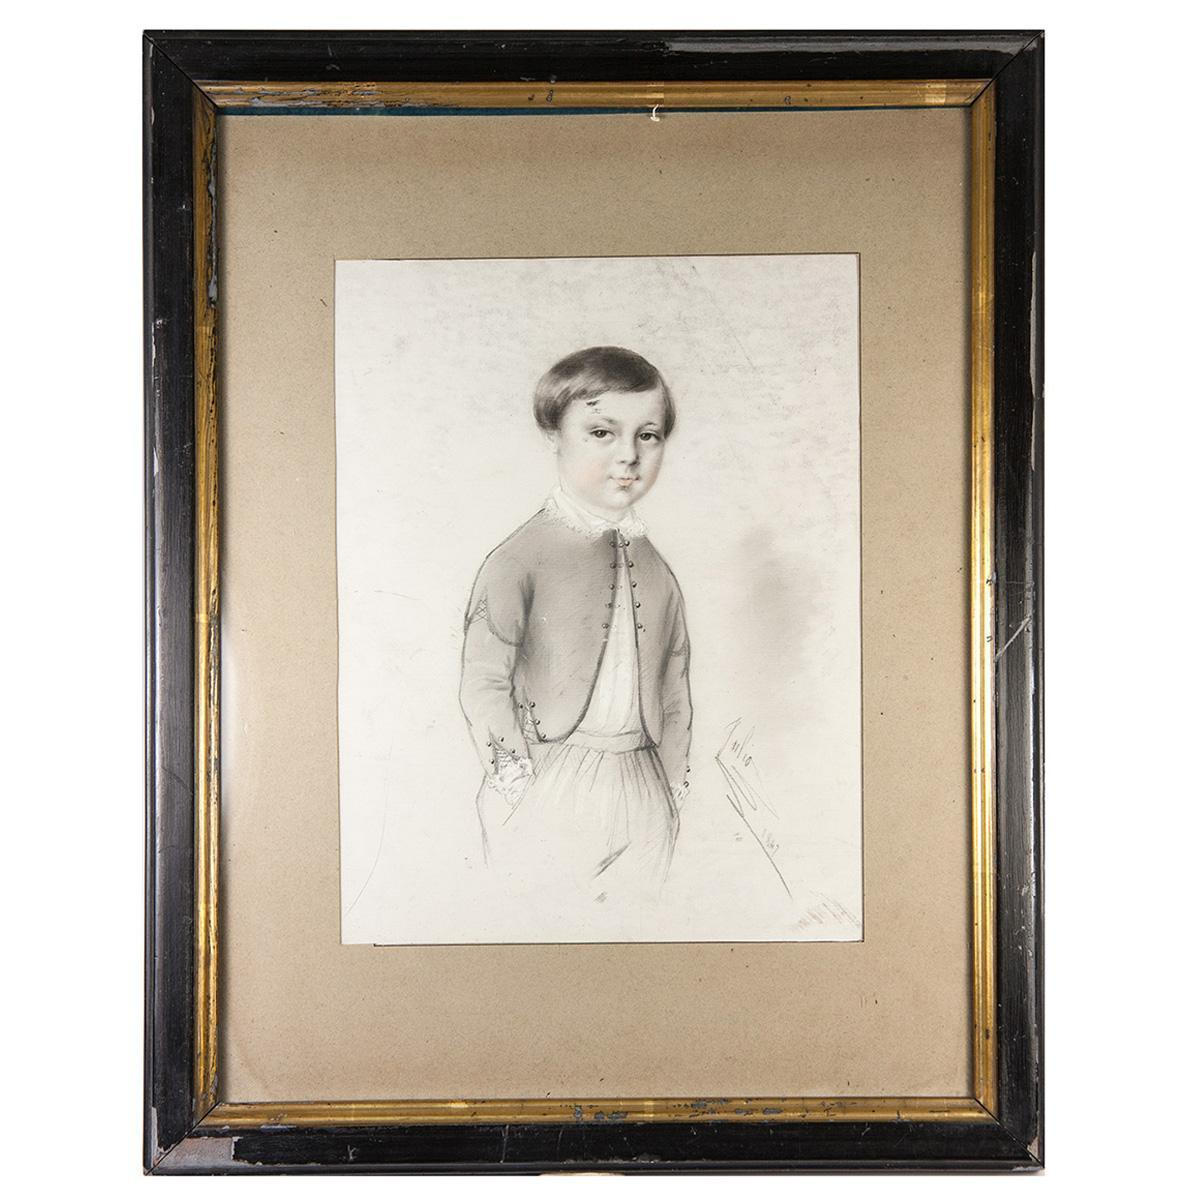 Exceptional antique pencil drawing portrait of a boy 14x11 frame